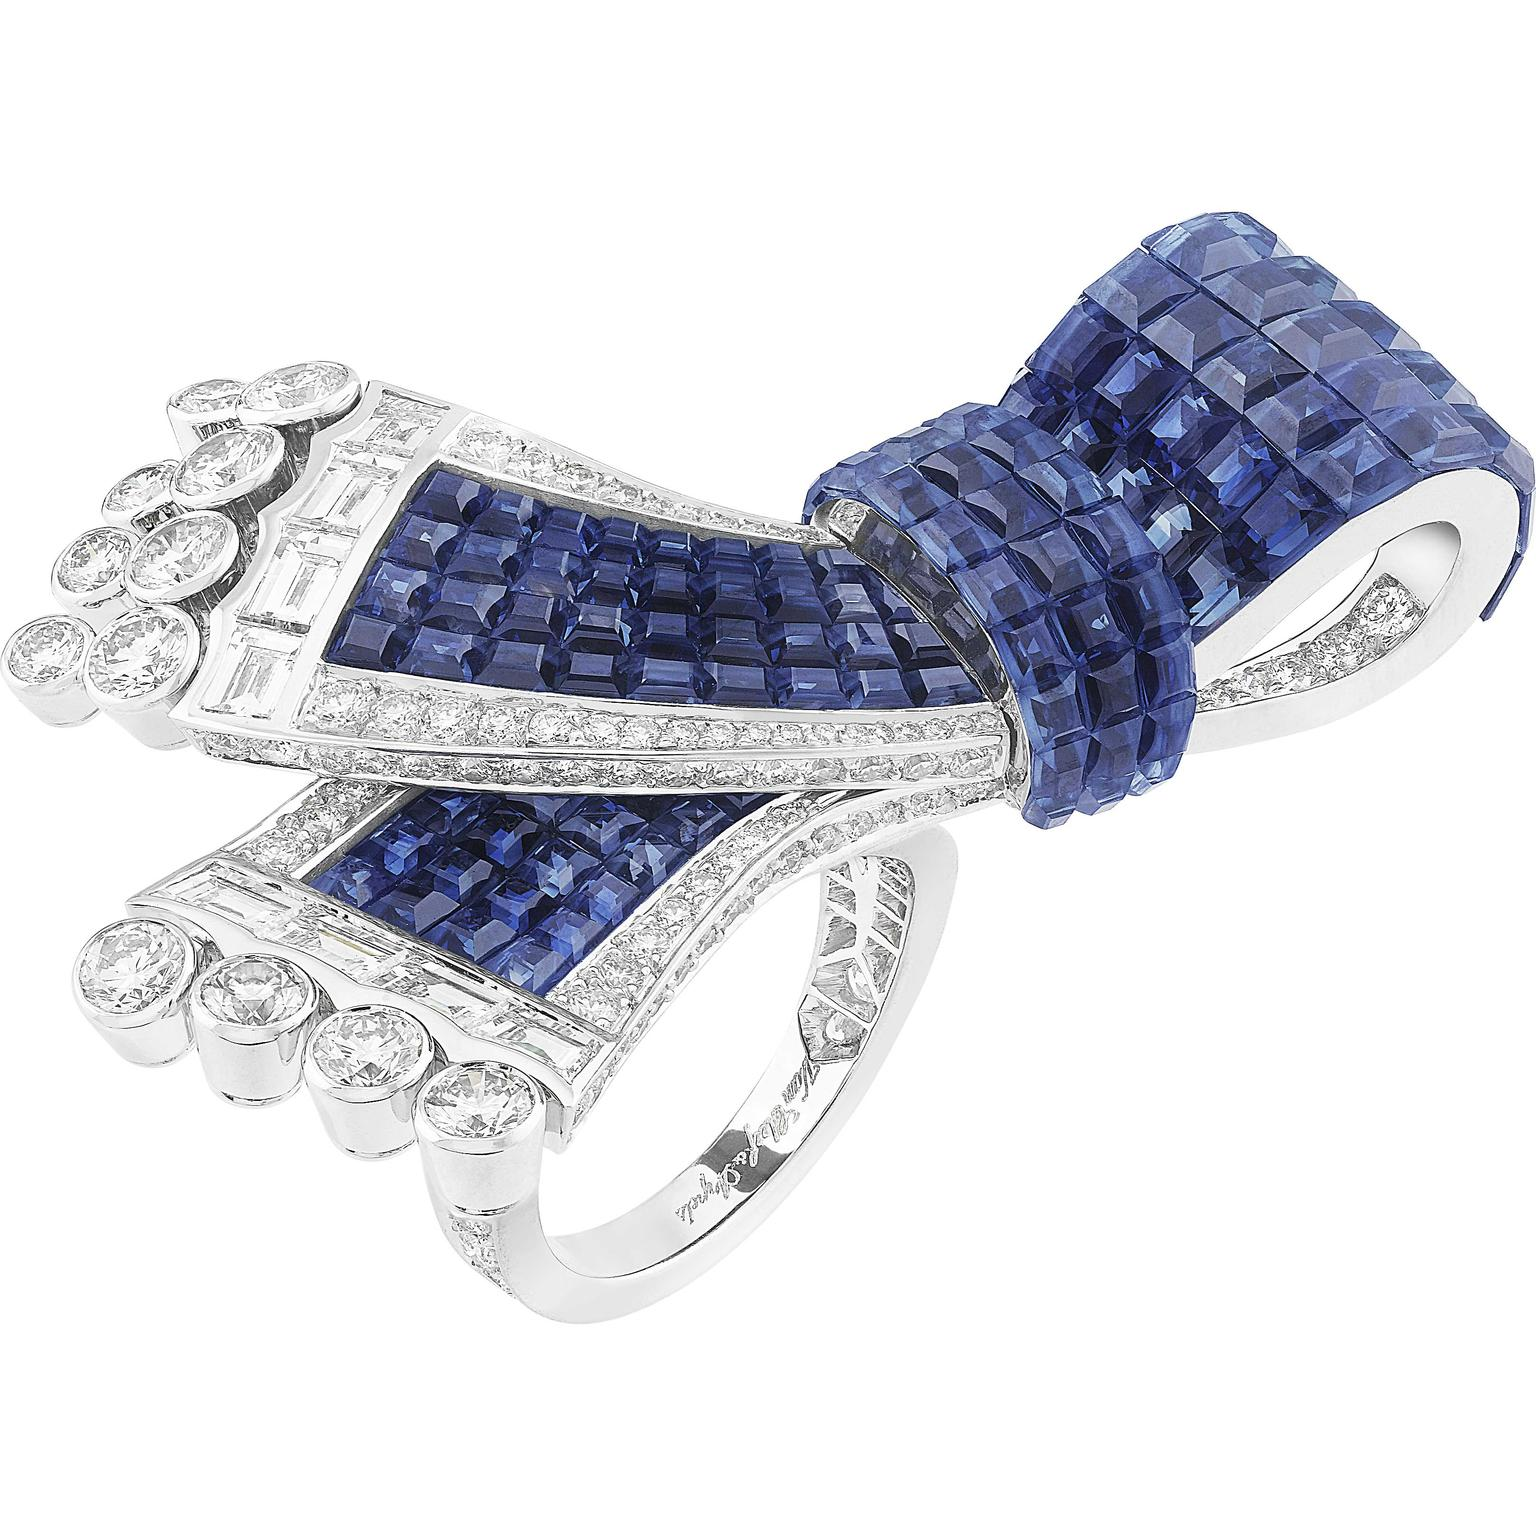 Van Cleef Arpels Noeud Mysterieux between the finger ring